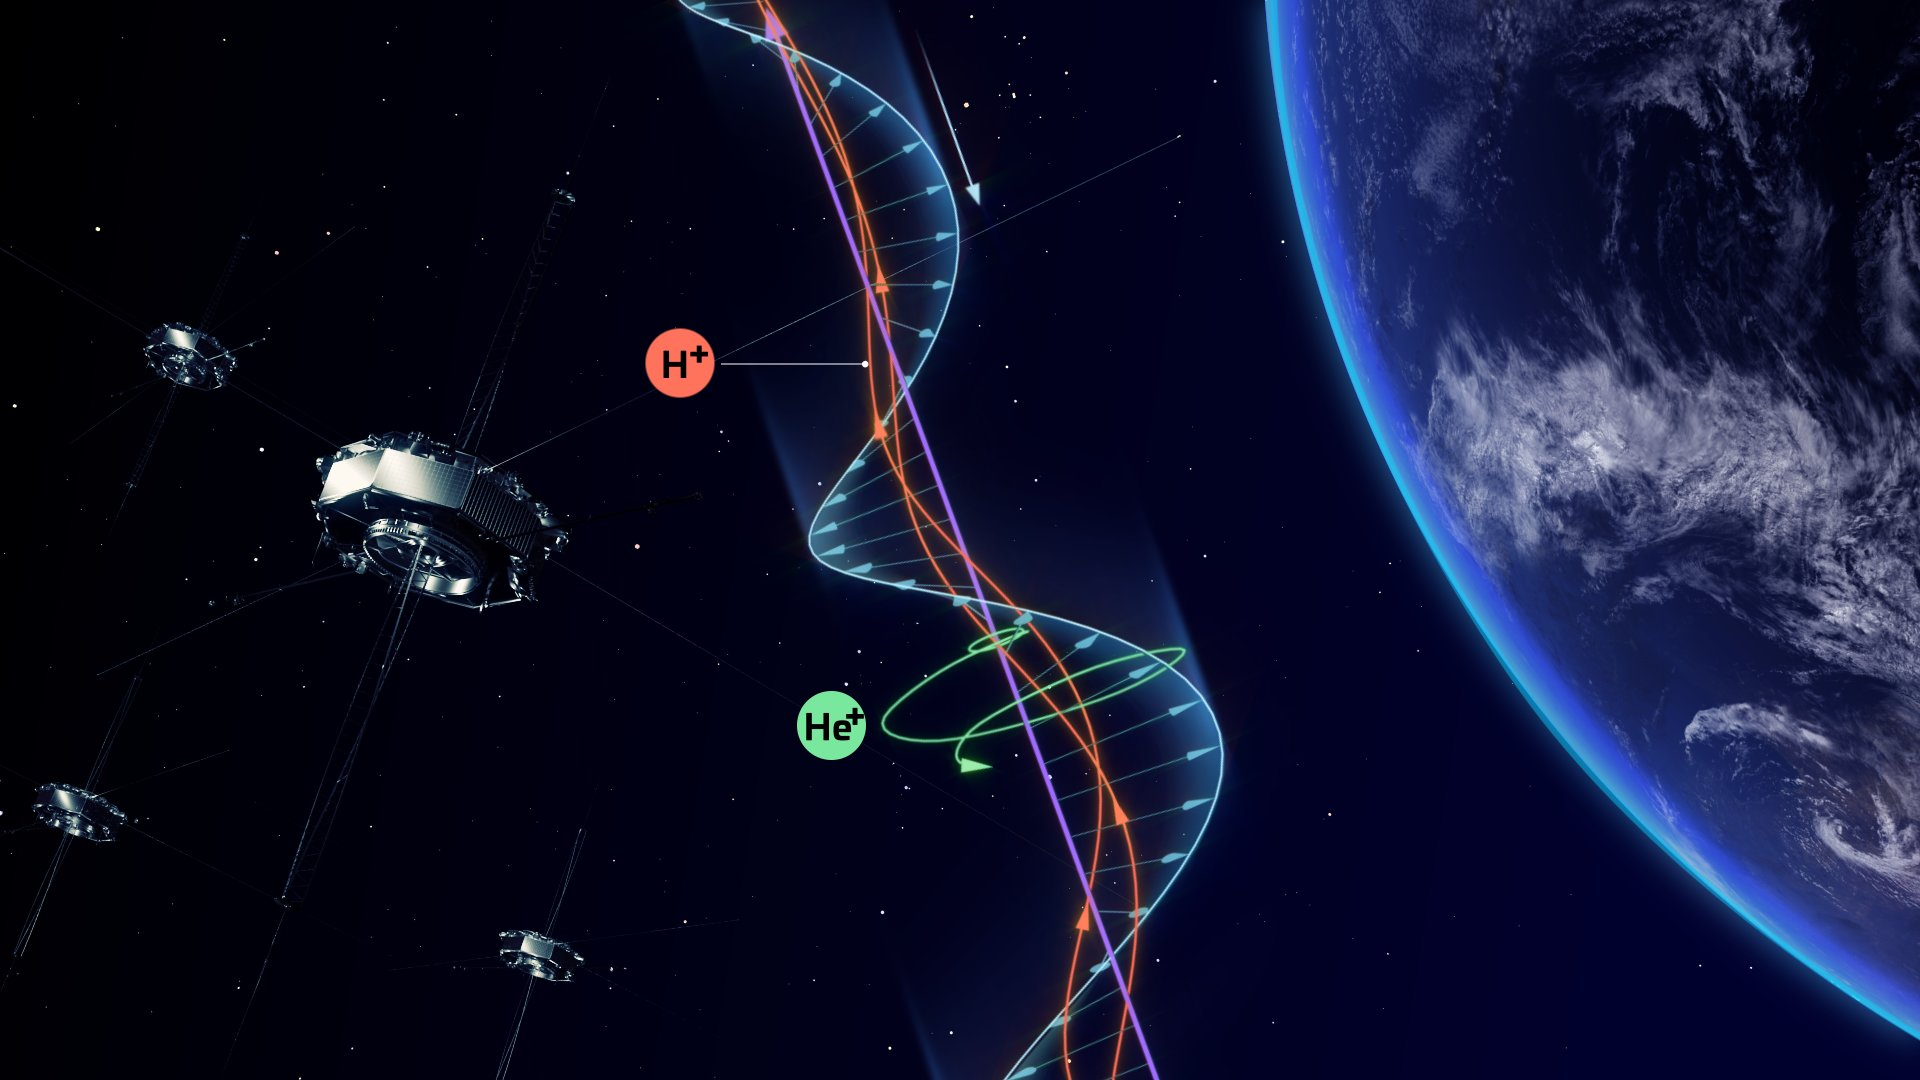 Wave-particle interactions allow collision-free energy transfer in space plasma